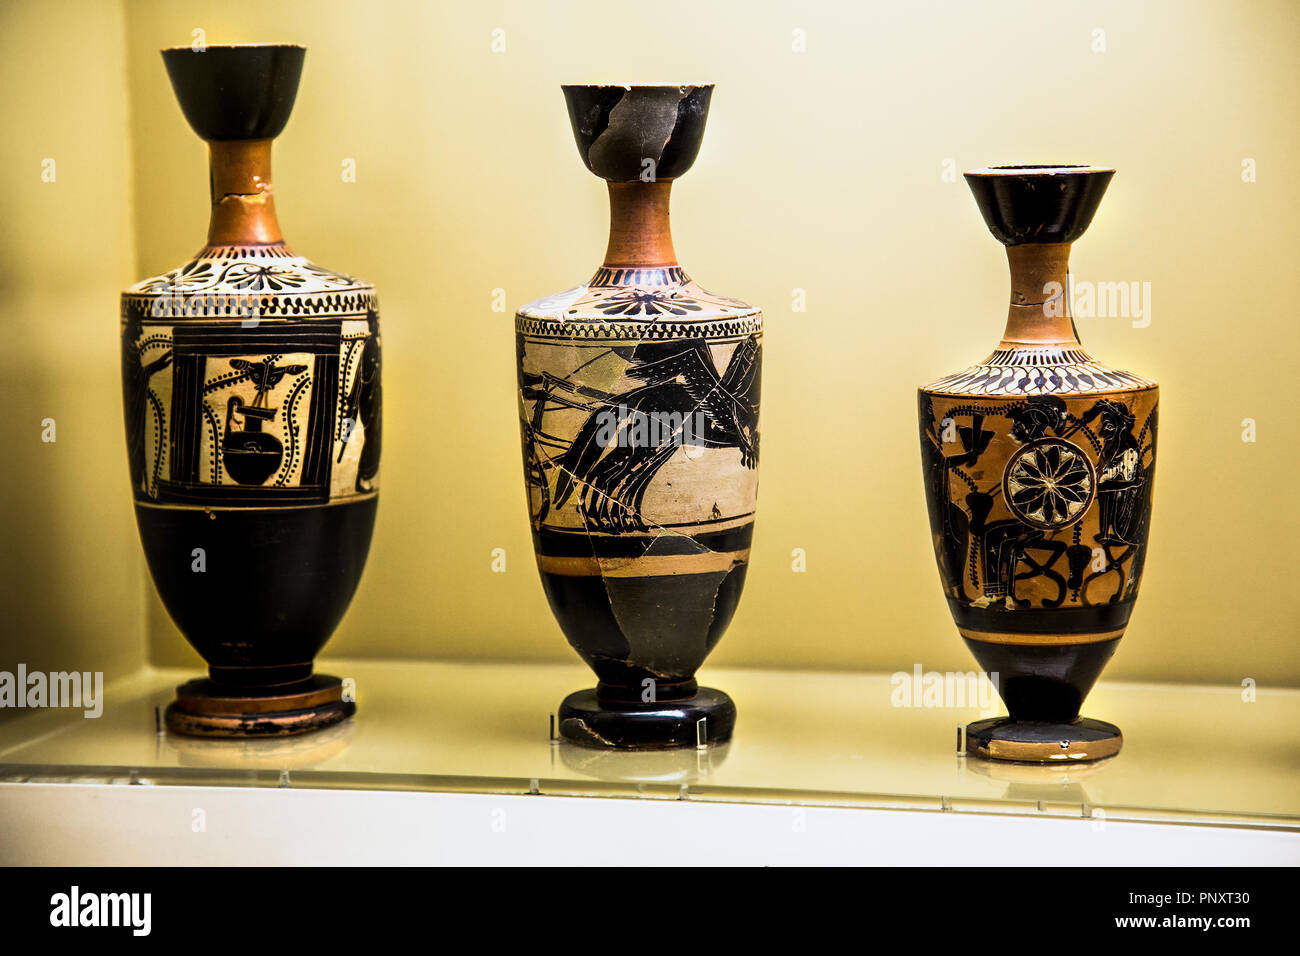 Ancient greek vase exposed in a museum, Greece. - Stock Image